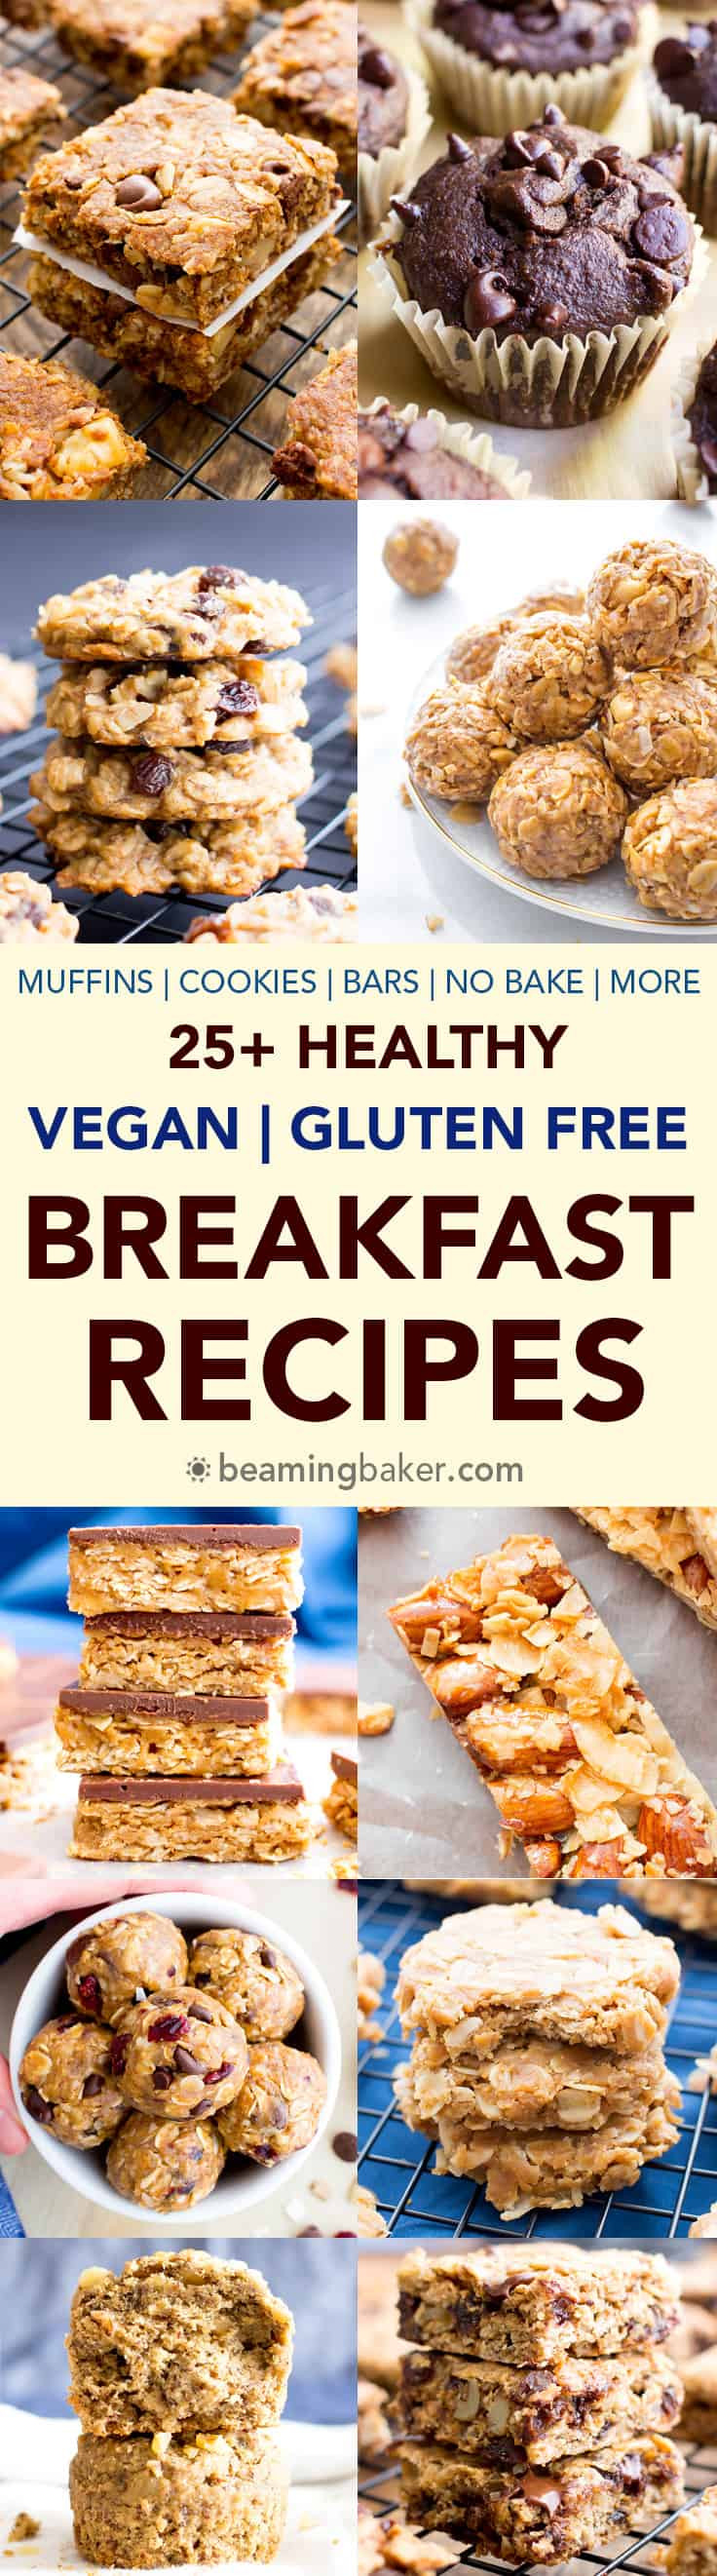 Gluten Free Healthy Recipes  25 Healthy Gluten Free Breakfast Recipes Vegan GF